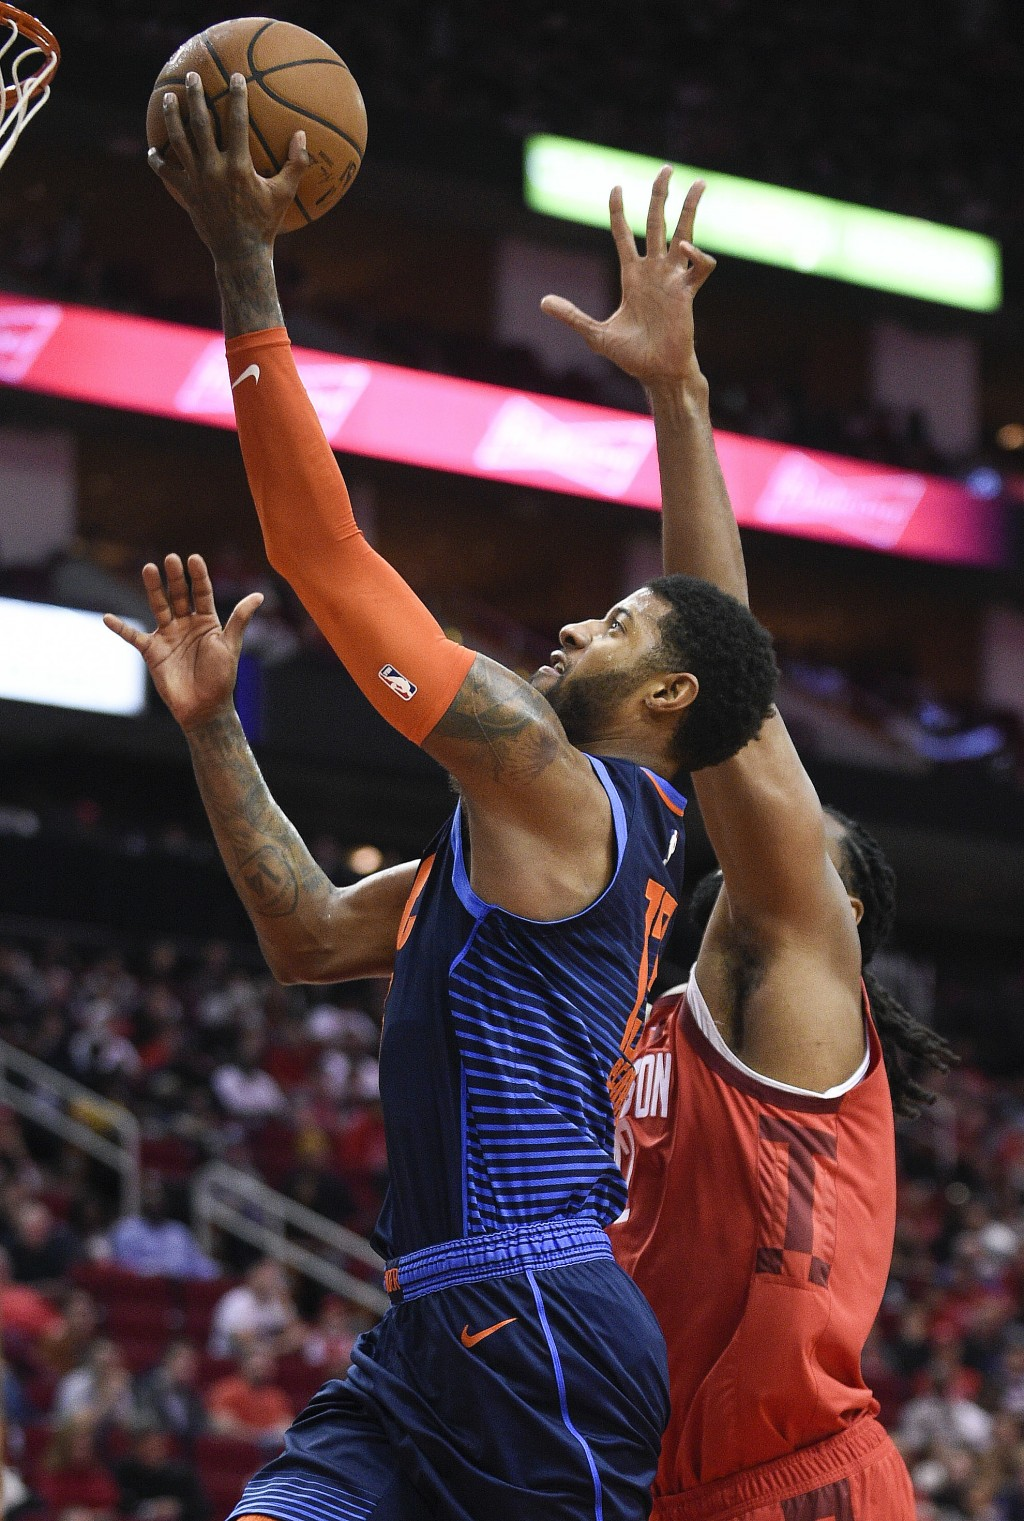 Oklahoma City Thunder forward Paul George, left, drives to the basket past Houston Rockets center Nene Hilario during the first half of an NBA basketb...